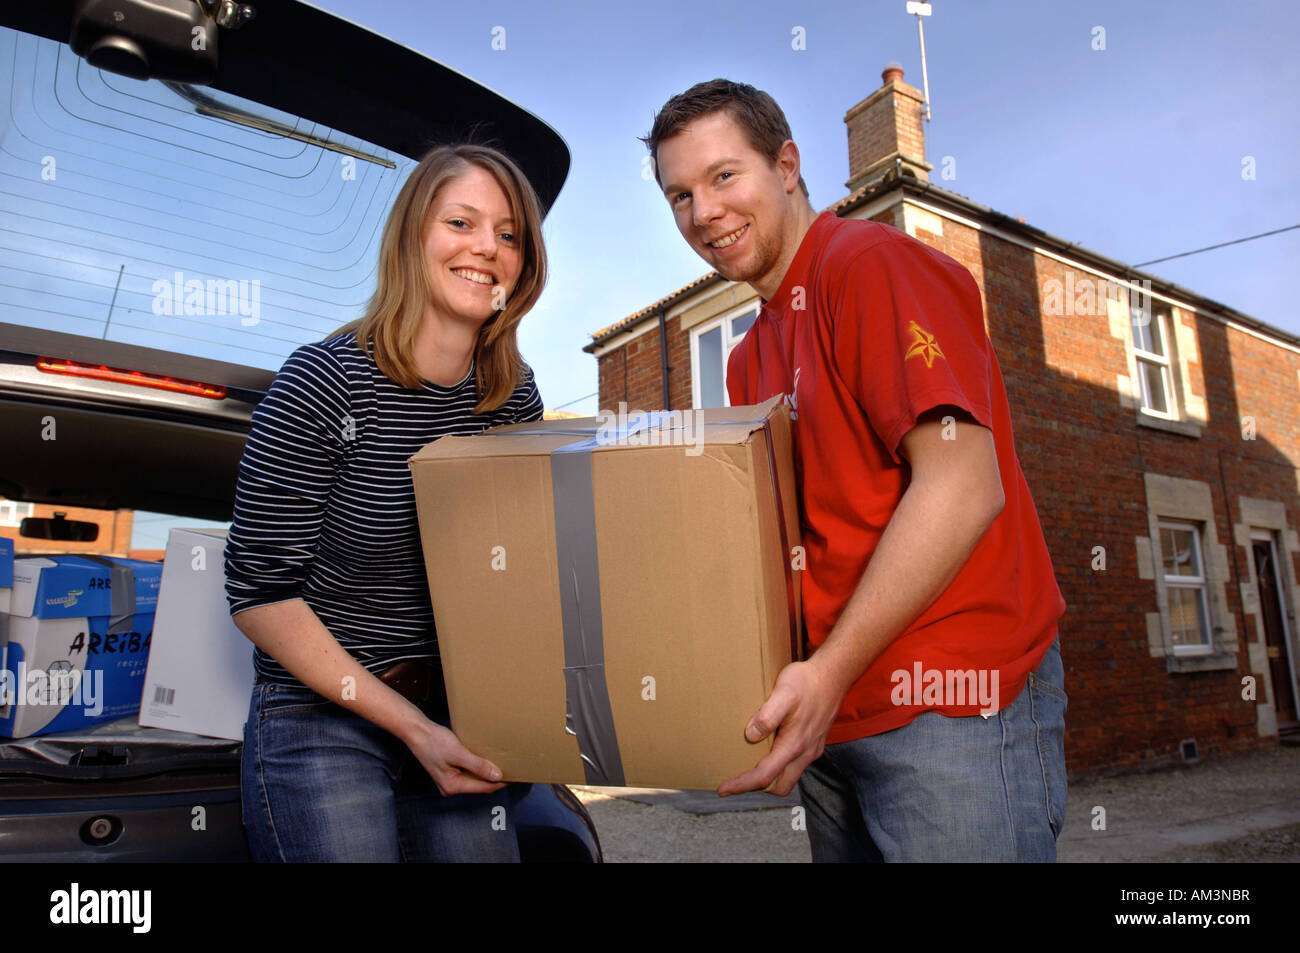 A YOUNG COUPLE MOVING INTO THEIR FIRST HOME UK - Stock Image